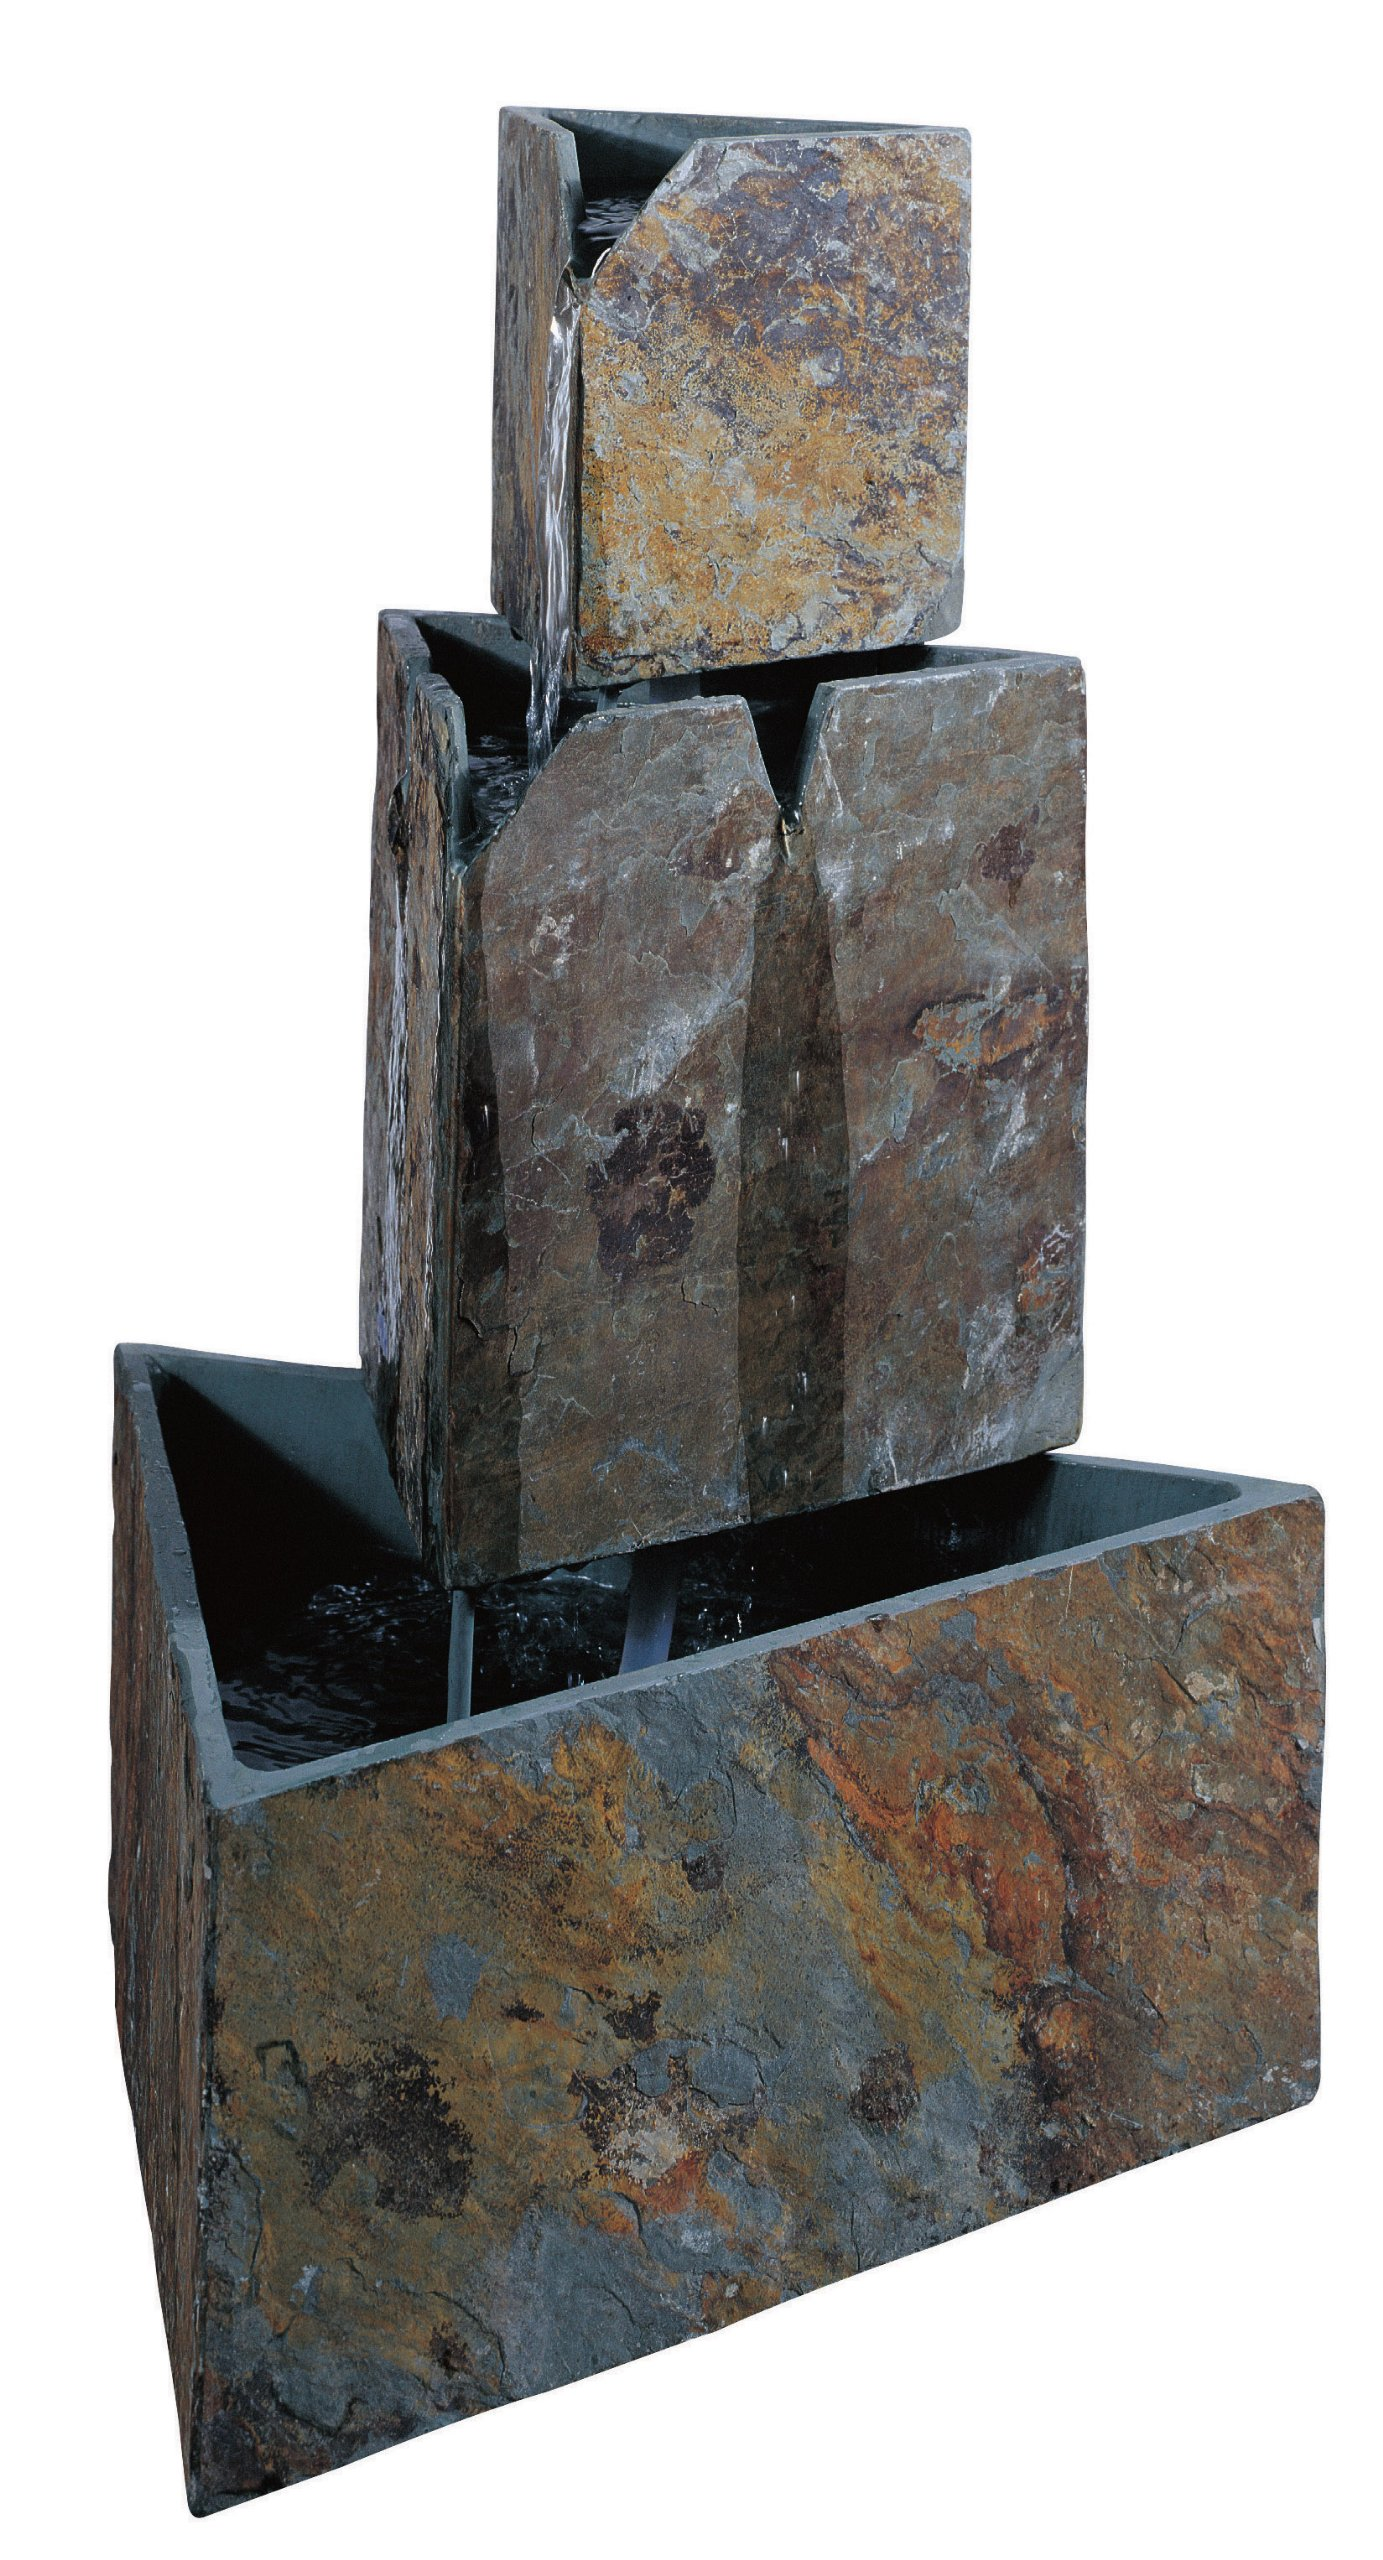 Kenroy Home #50287SL Stacked Triangles Outdoor Floor Fountain in Natural Slate Finish